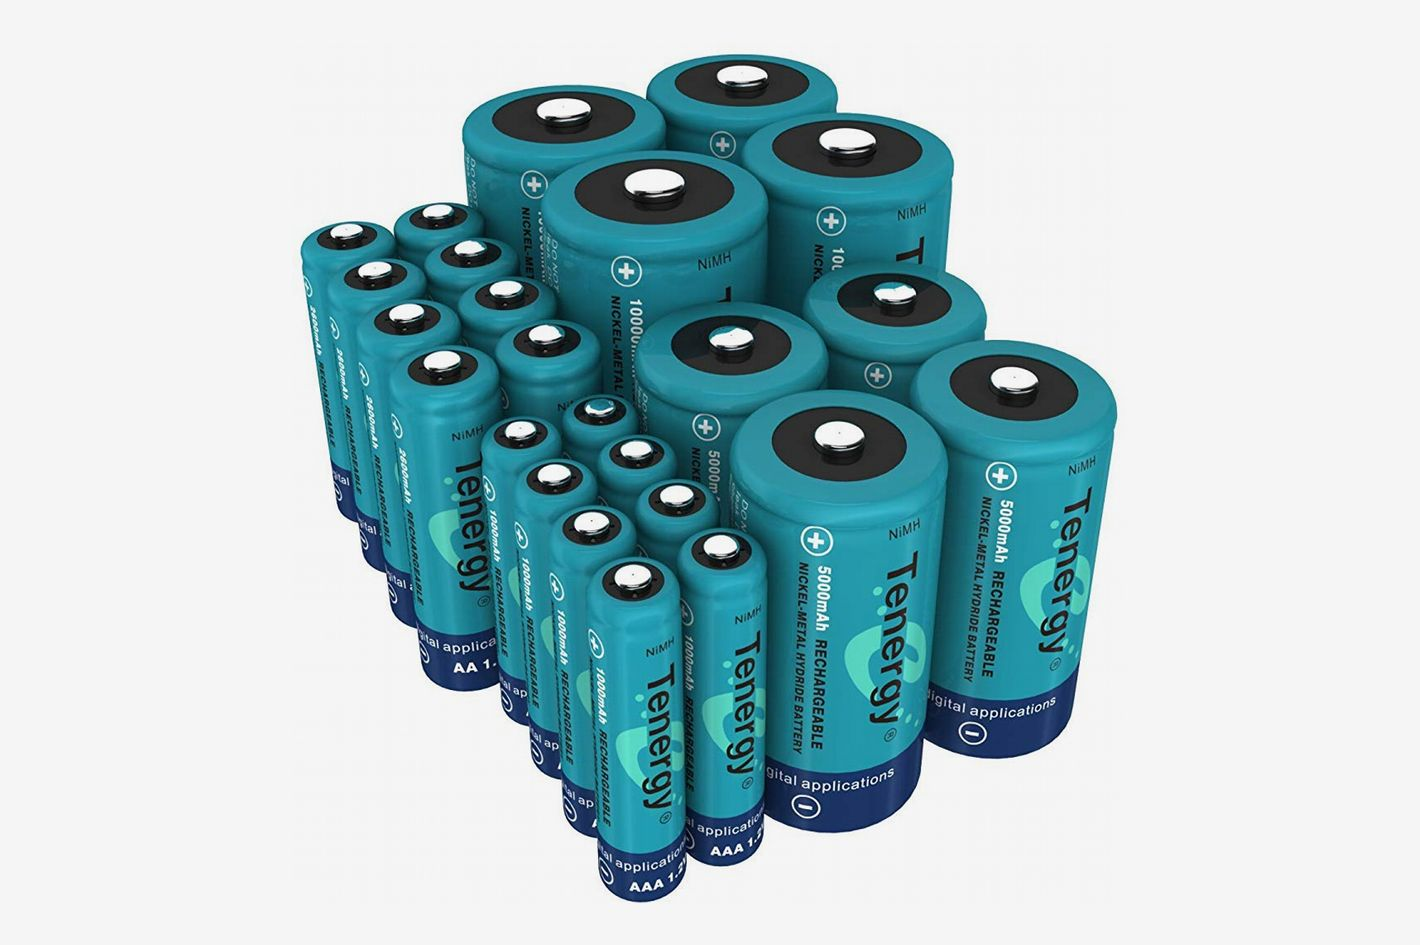 Tenergy Rechargeable Battery Combo Pack (24-Pack): AA (8-Pack), AAA (8-pack), C (4-Pack), and D (4-Pack)